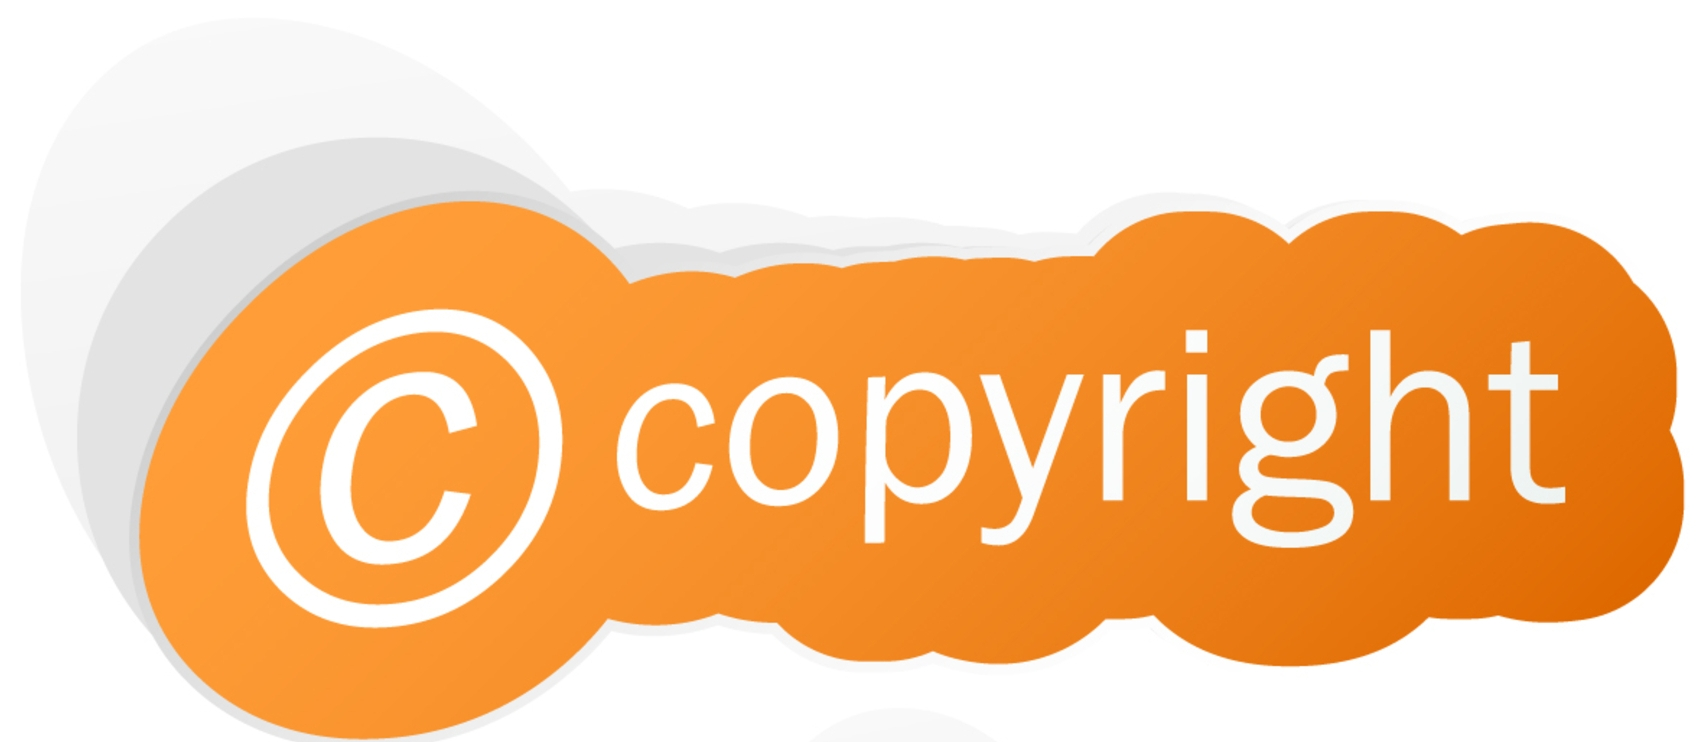 All About Copyrights